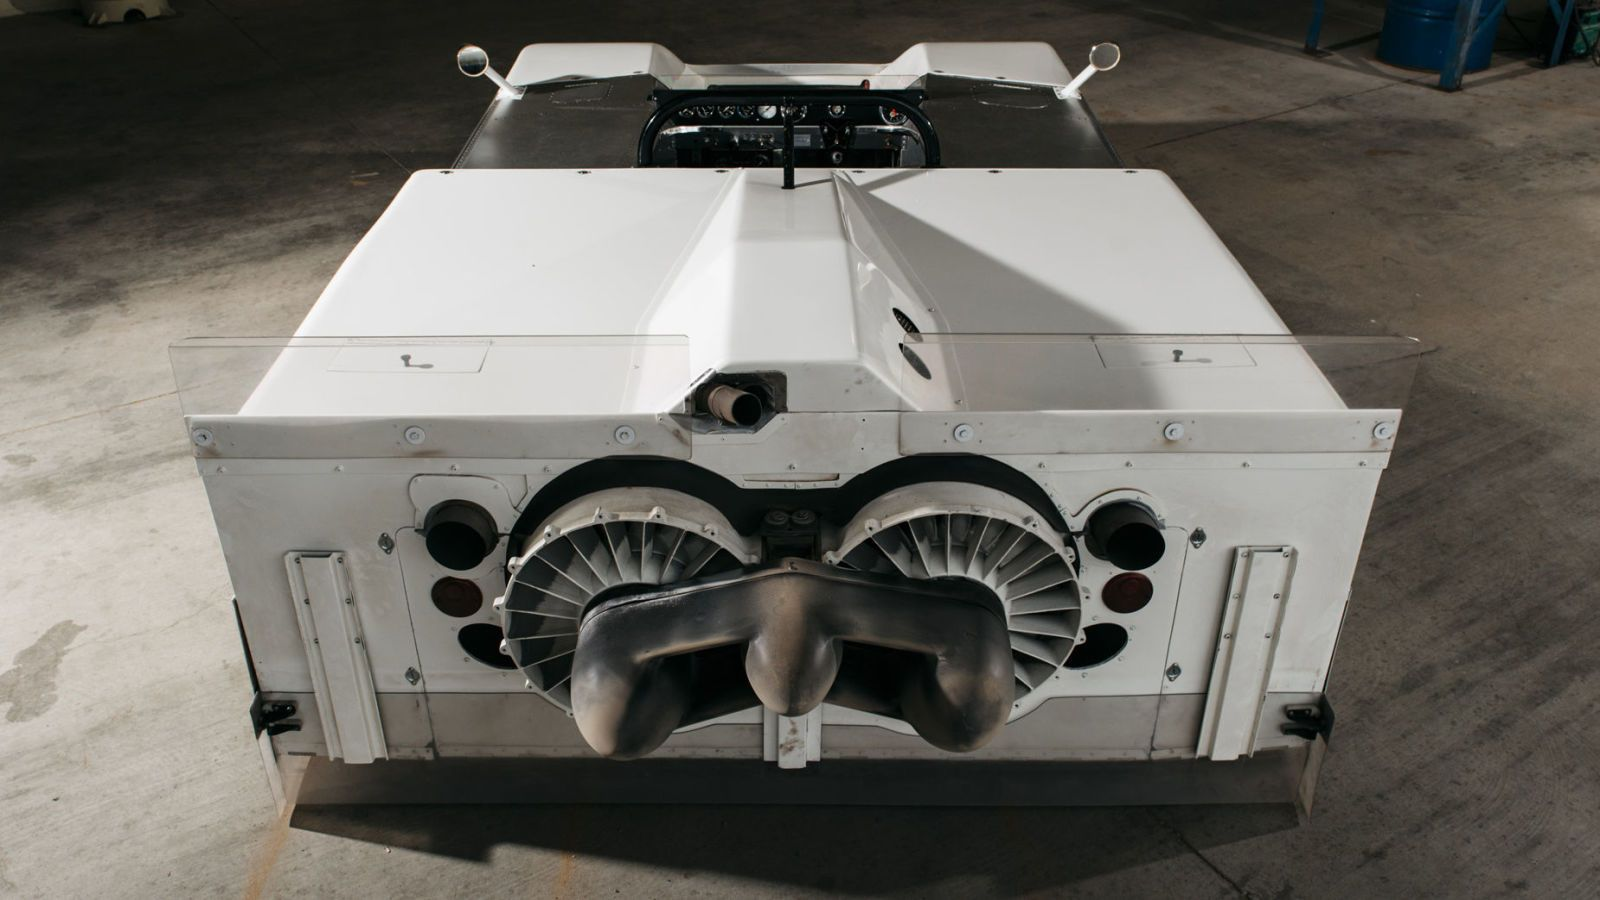 Jim Hall and the Chaparral 2J: The Story of America's Most Extreme Race Car